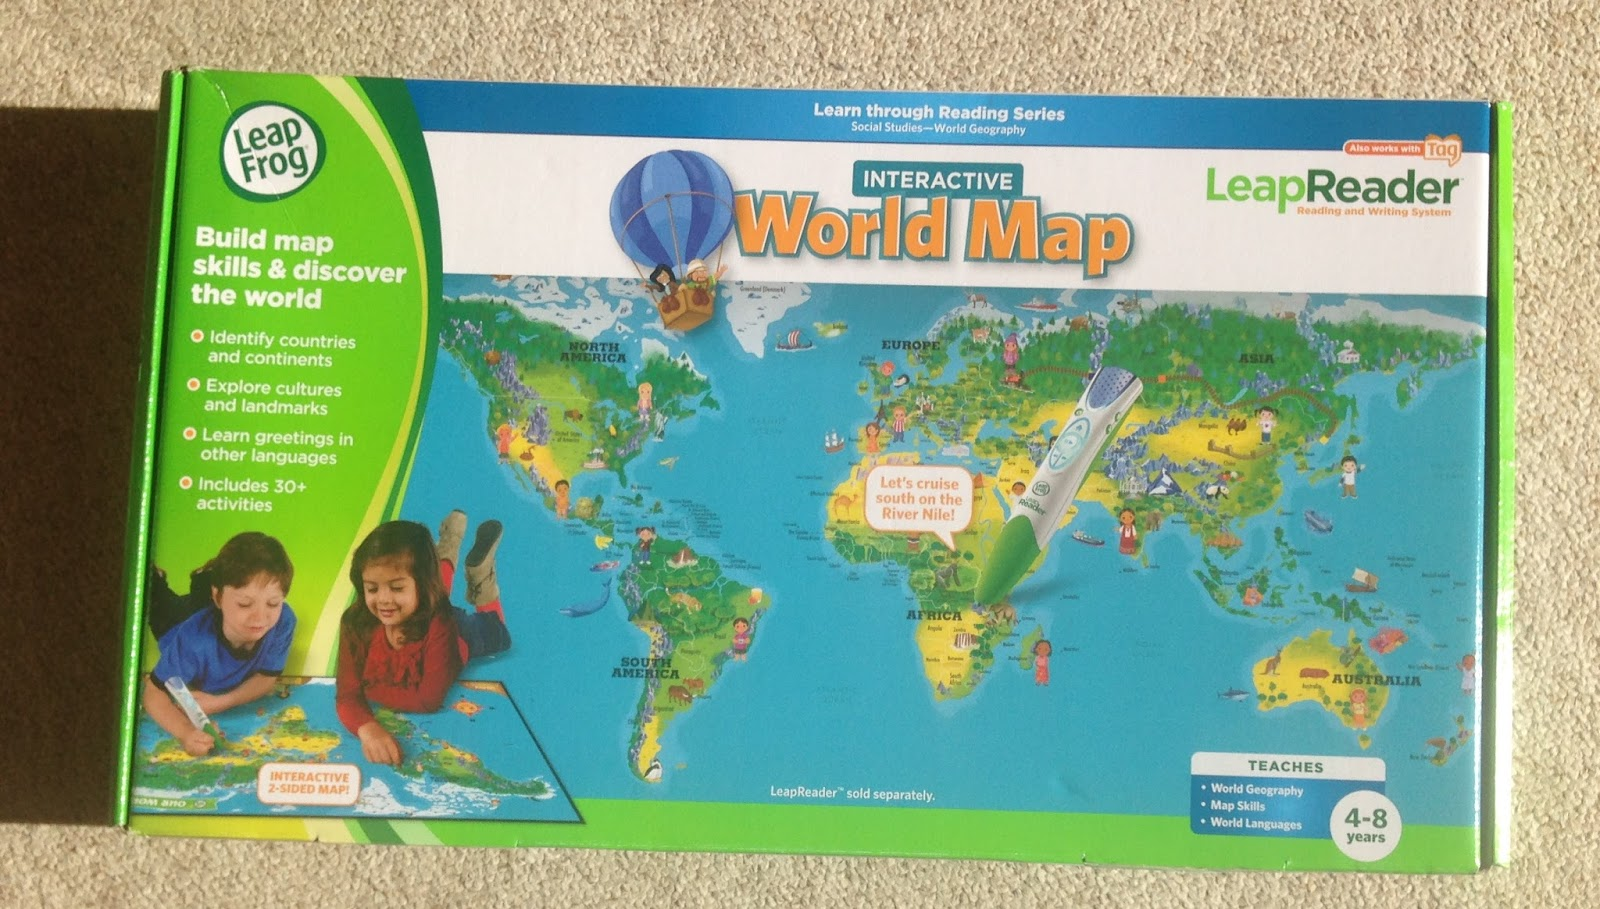 Leapfrog Interactive World Map.Mellow Mummy Leapfrog Discover Summer Club And Leapreader